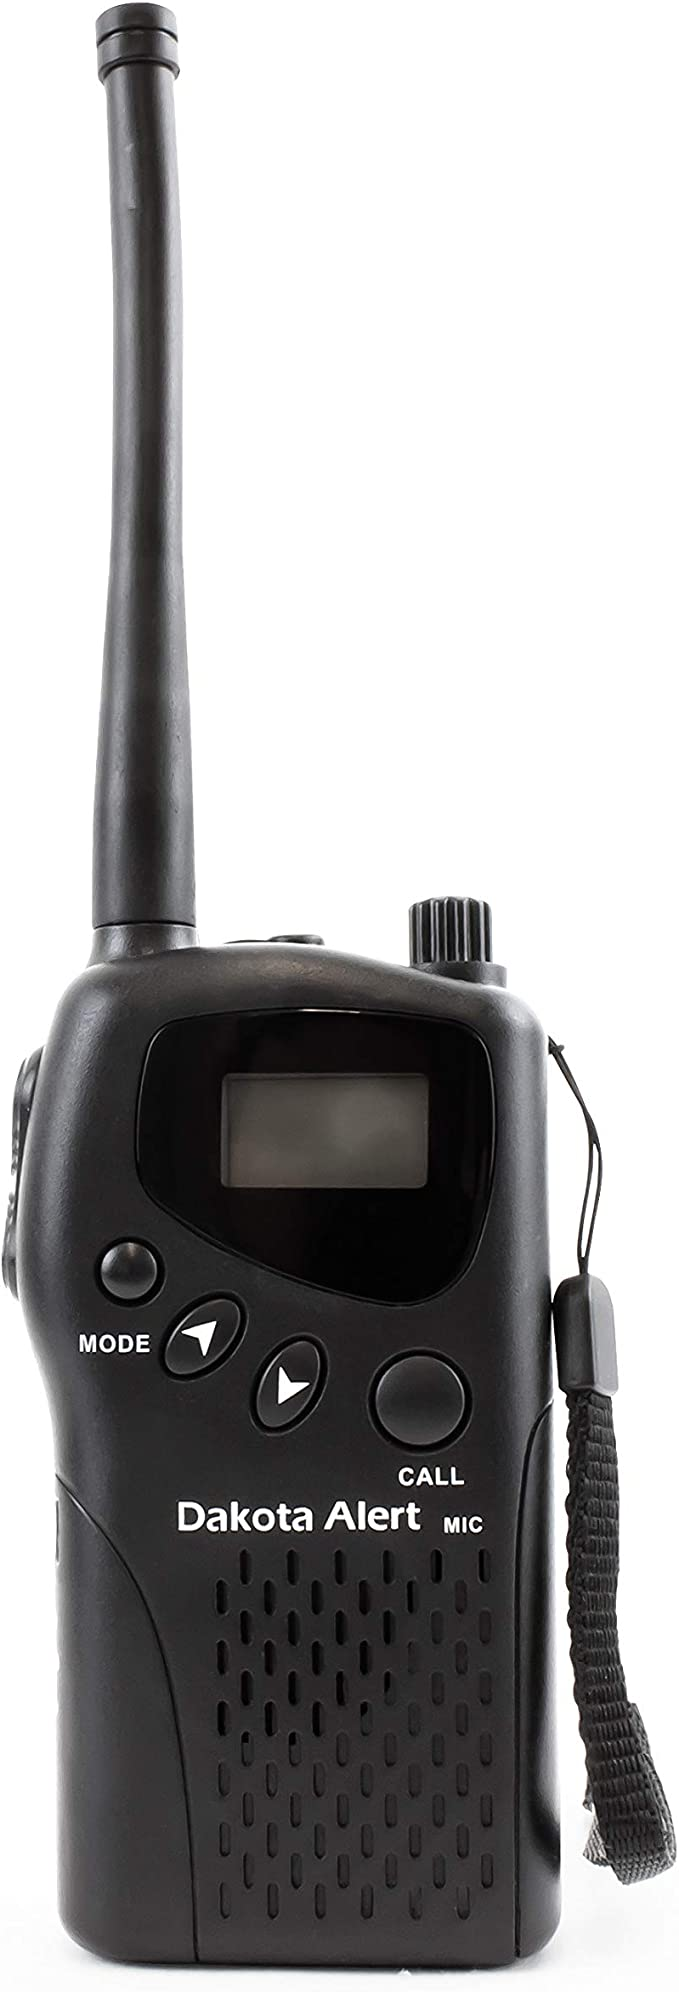 Dakota Alert M538-BS MURS Base Station Multi Use Radio Service Transceiver with Telescopic Antenna and Normally Open Relay Output